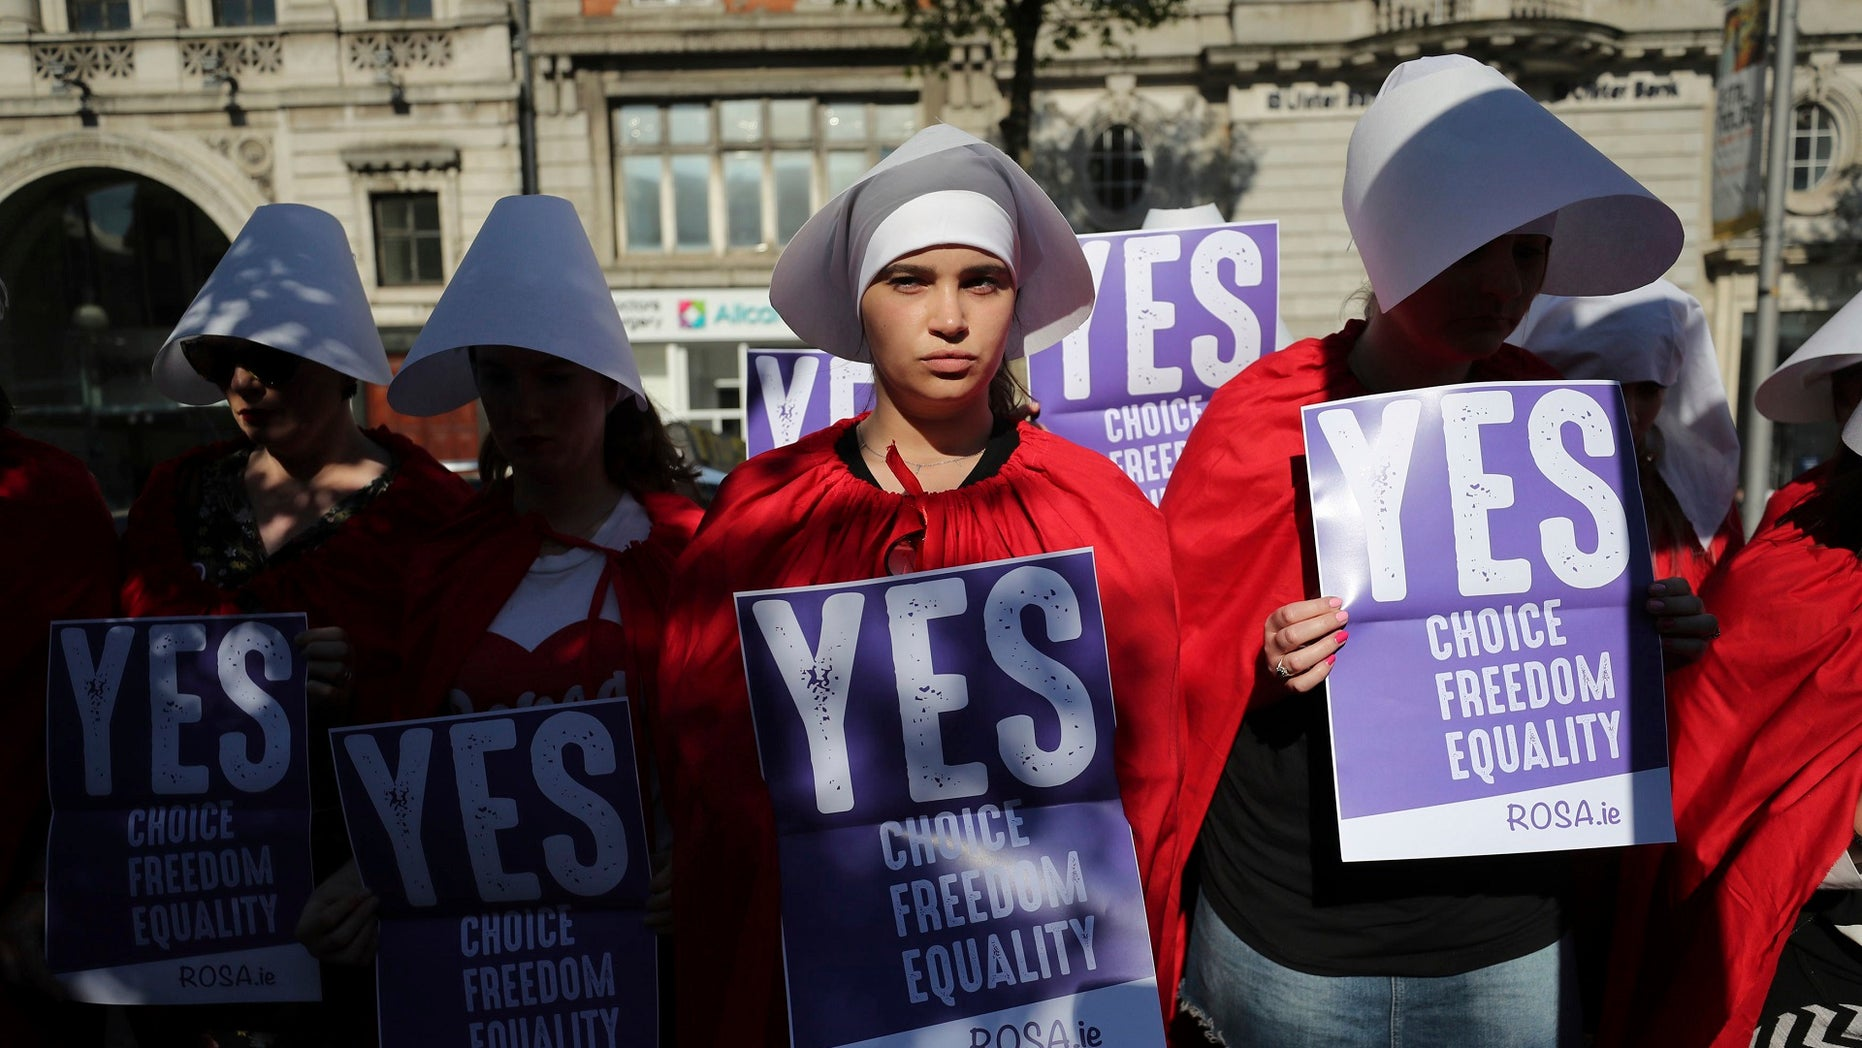 Volunteers from Reproductive rights, against Oppression, Sexism & Austerity (ROSA) dressed as characters from 'The Handmaid's Tale', demonstrate in Dublin, May 23, 2018.